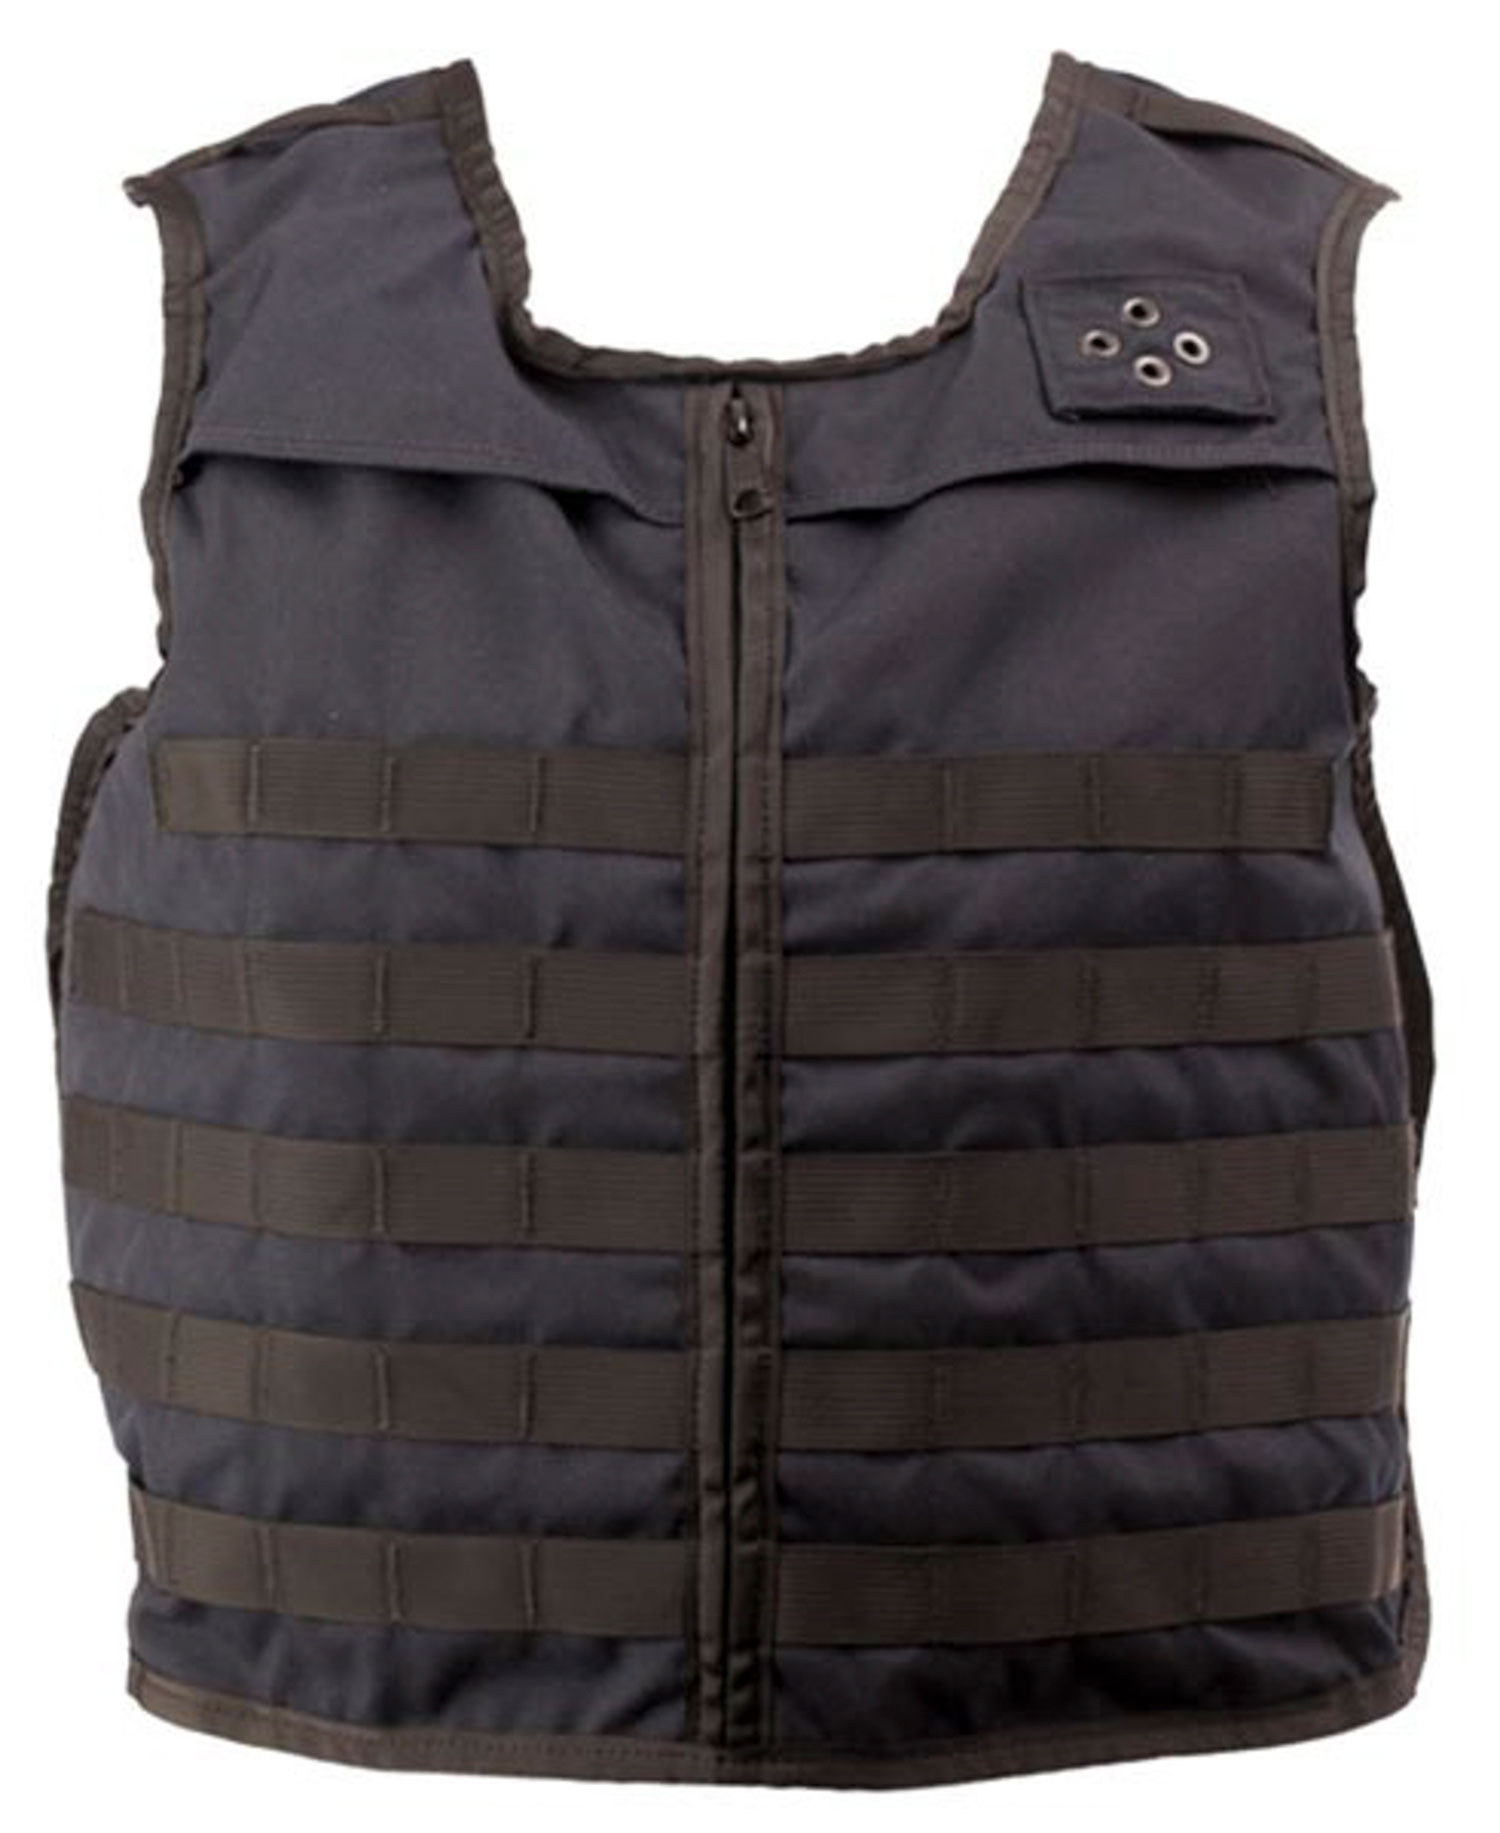 Survival Armor Assault Outer Carrier with Molle